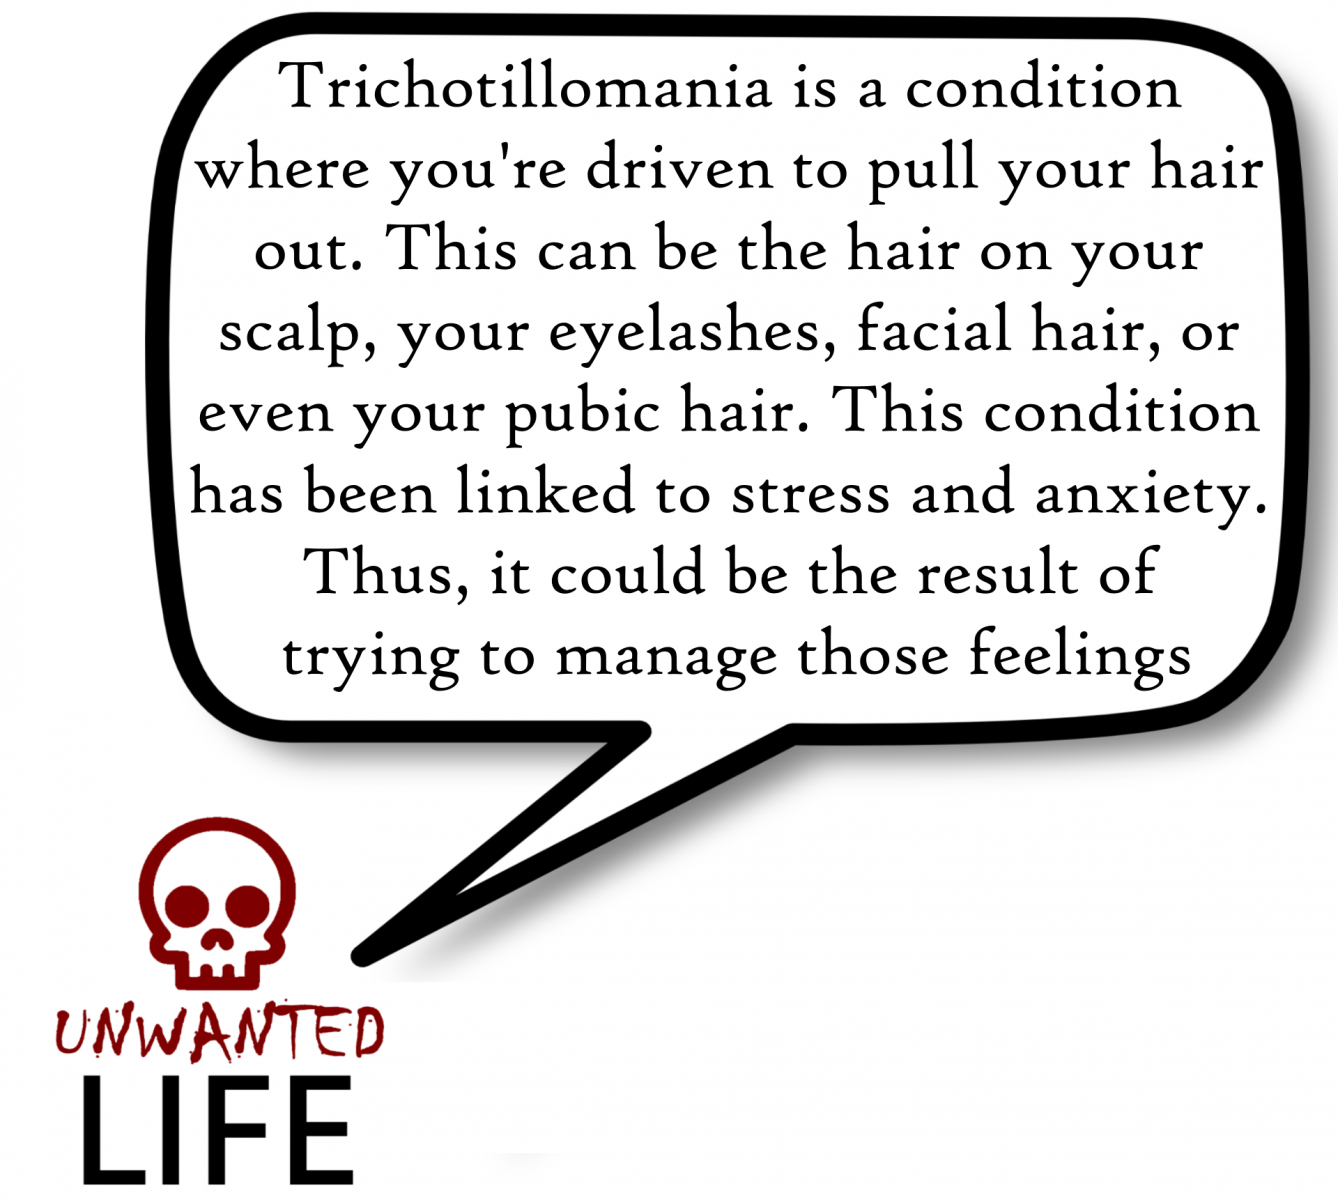 Traction-Alopecia-The-Hair-Pulling-Question-1